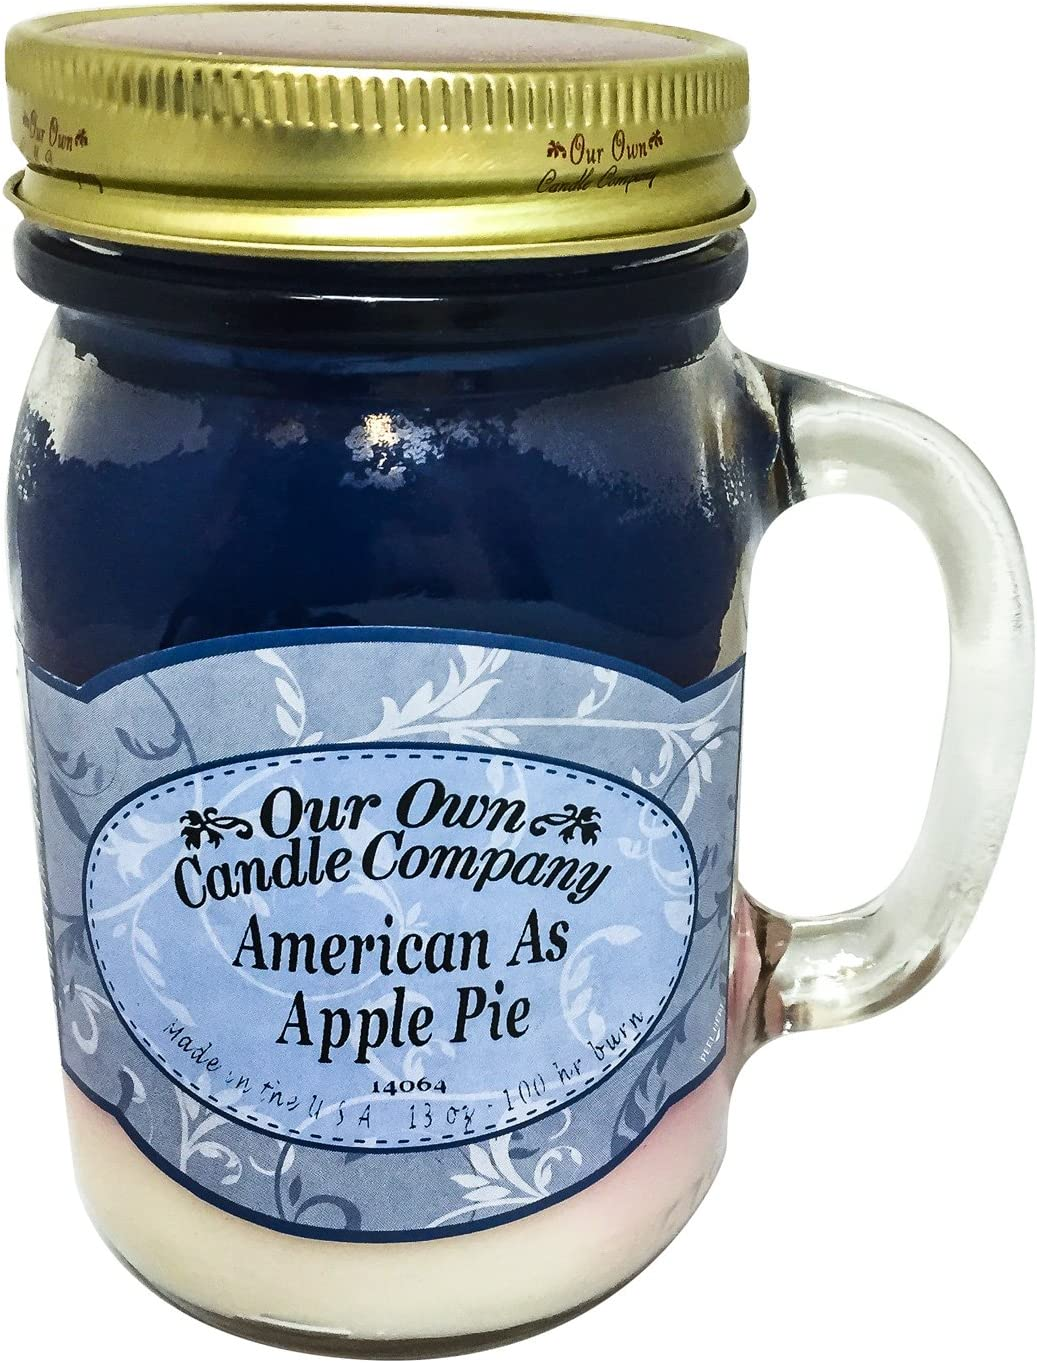 American as Apple Pie Scented 13 Max 61% OFF Ranking TOP14 oz Candle t Made - Mason in Jar